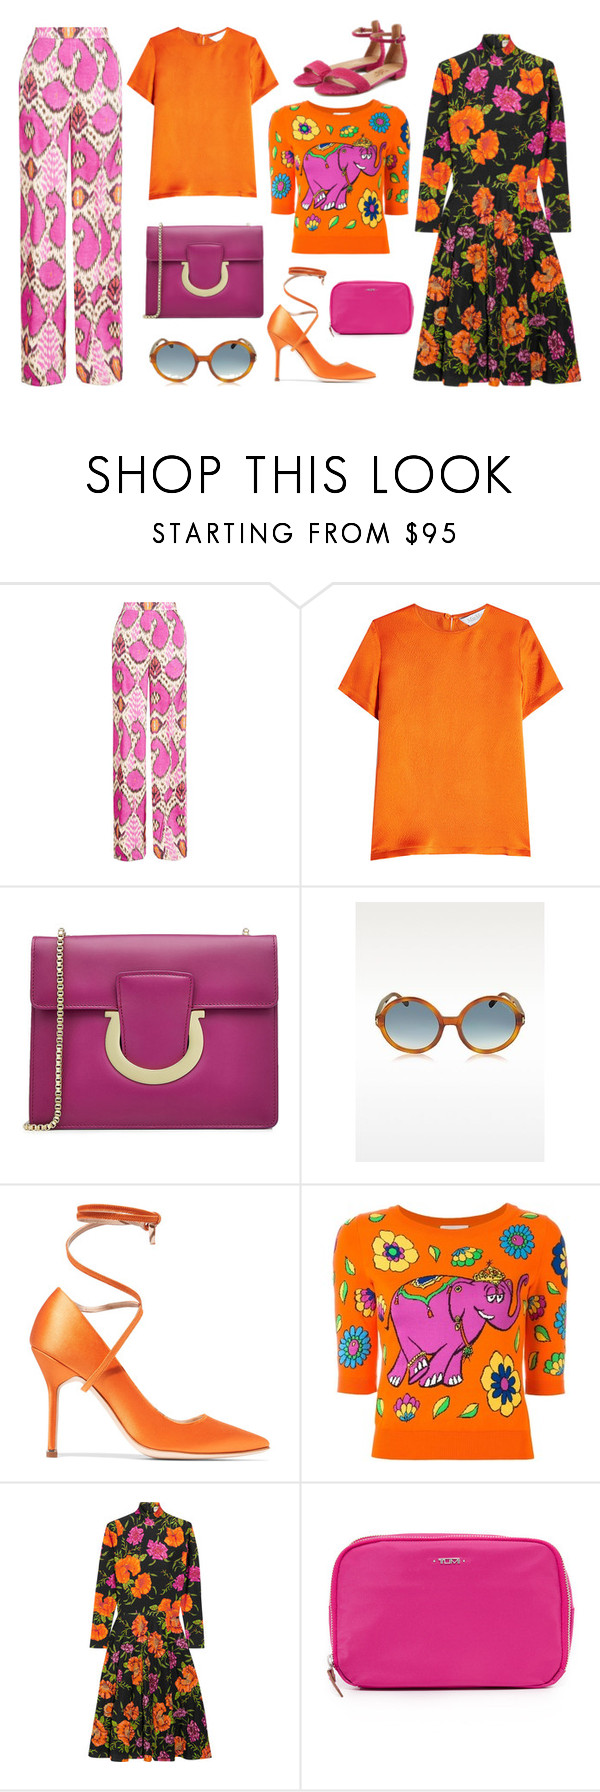 """Floral Print"" by cherieaustin ❤ liked on Polyvore featuring Etro, MaxMara, Salvatore Ferragamo, Vetements, Moschino, Balenciaga and Tumi"